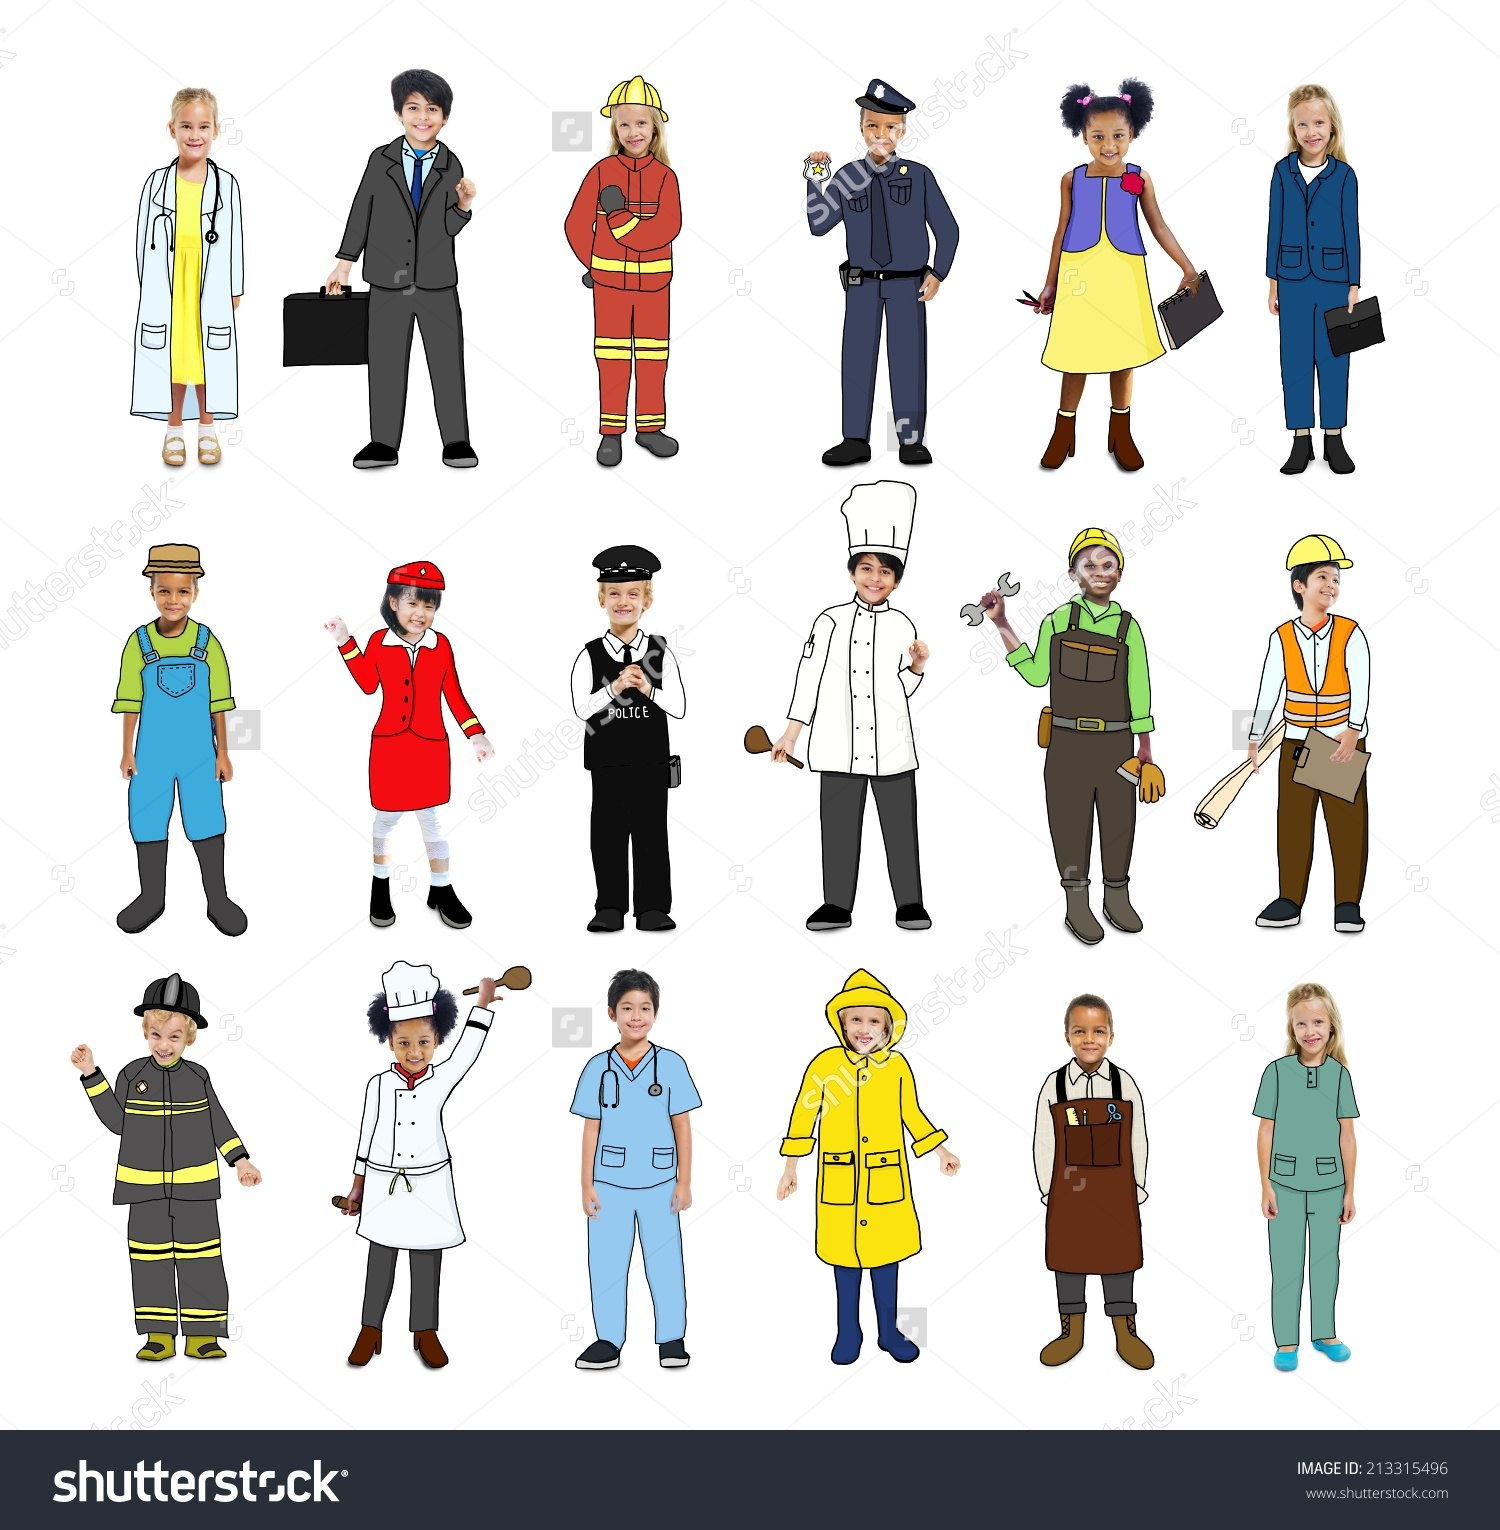 Jobs Clipart with Different Jobs Clipart » Clipart Station.